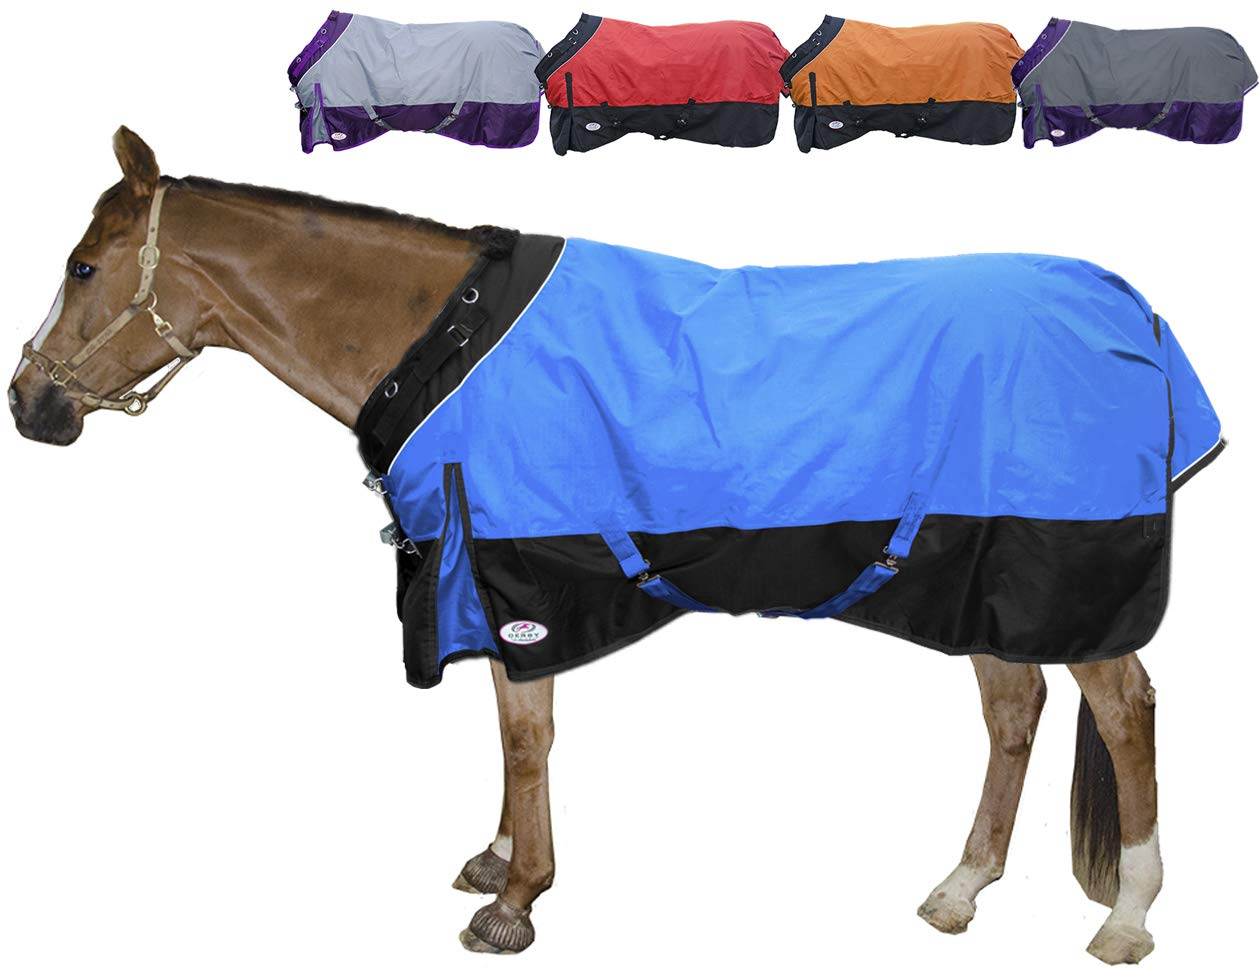 Derby Originals Windstorm Series Reflective Safety 1200D Ripstop Waterproof Nylon Horse Winter Turnout Blanket with 300g Insulation - Two Year Limited Manufacturer's Warranty, Electric Blue/Black